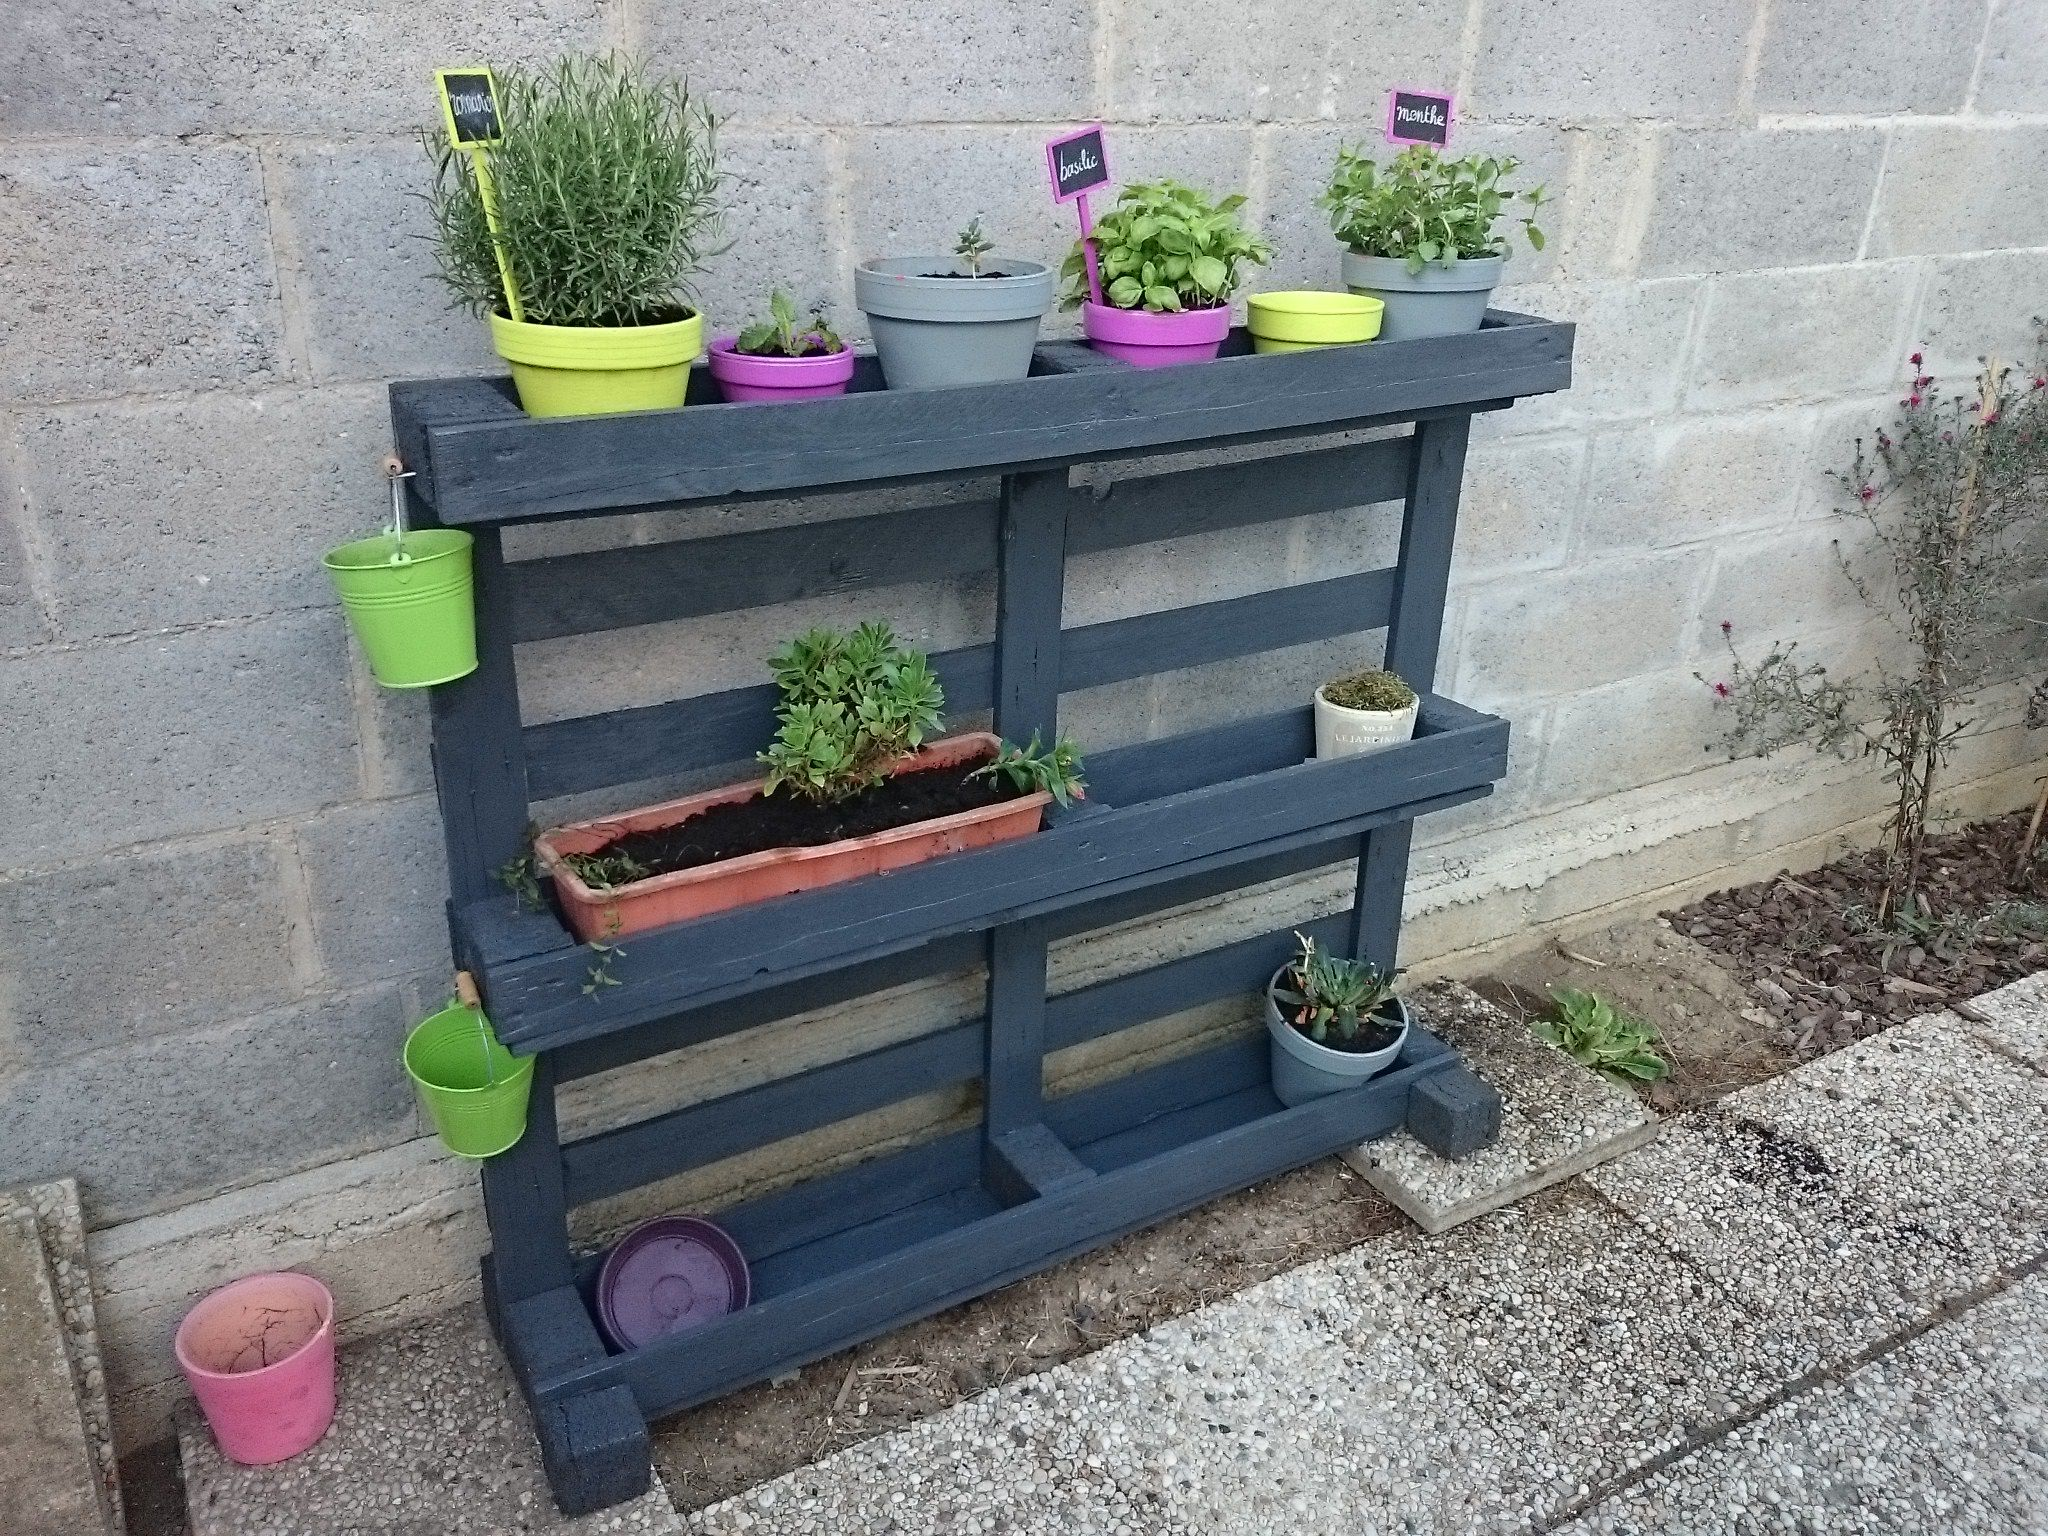 Tag Re Pots De Fleurs Pallet Planter Shelf 1001 Pallets